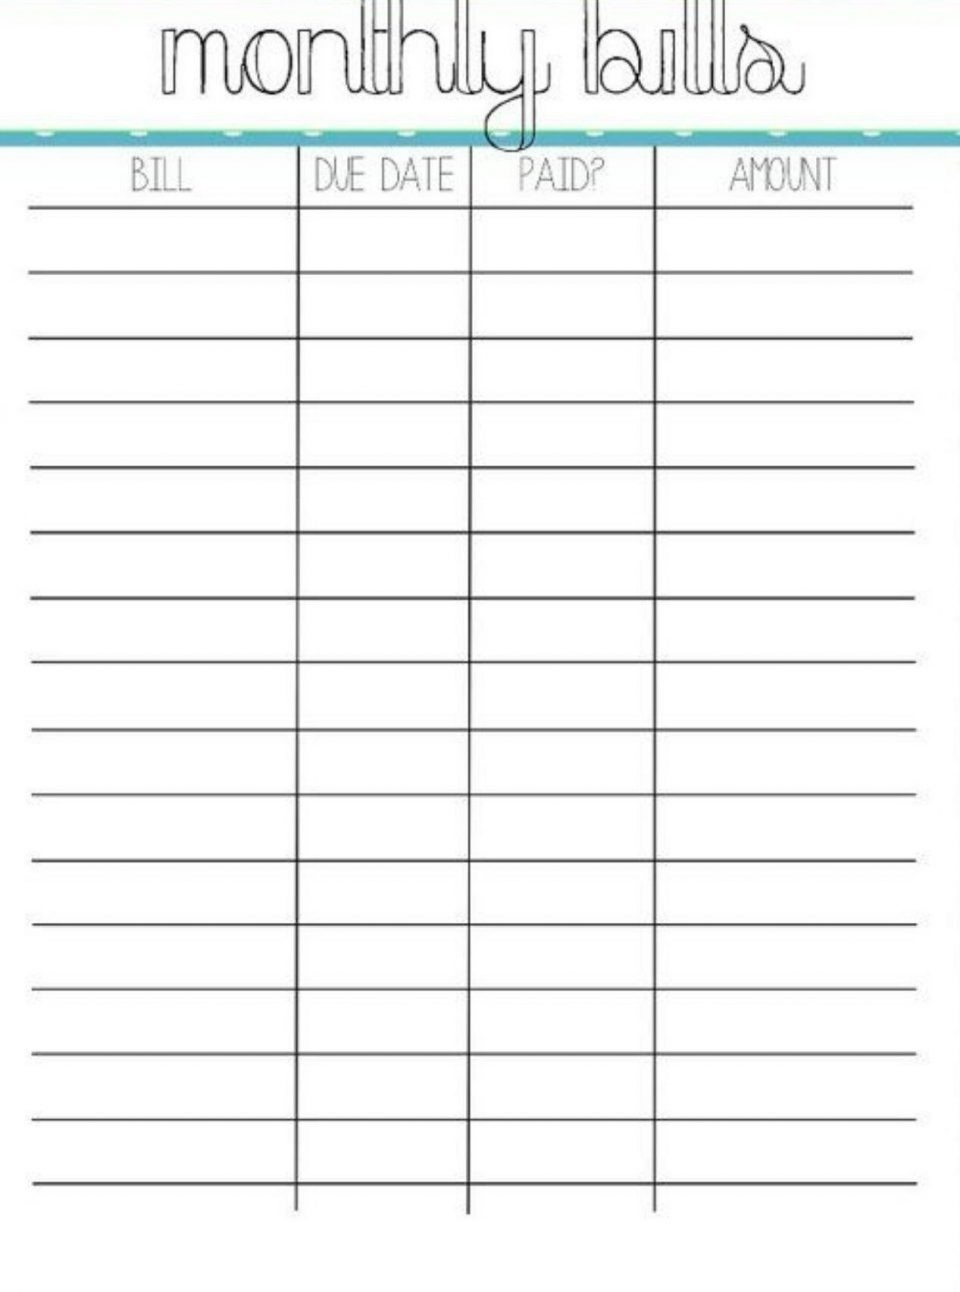 Monthly Bill Sample With Free Printable Organizer Template  Printable Monthly Payment Sheet